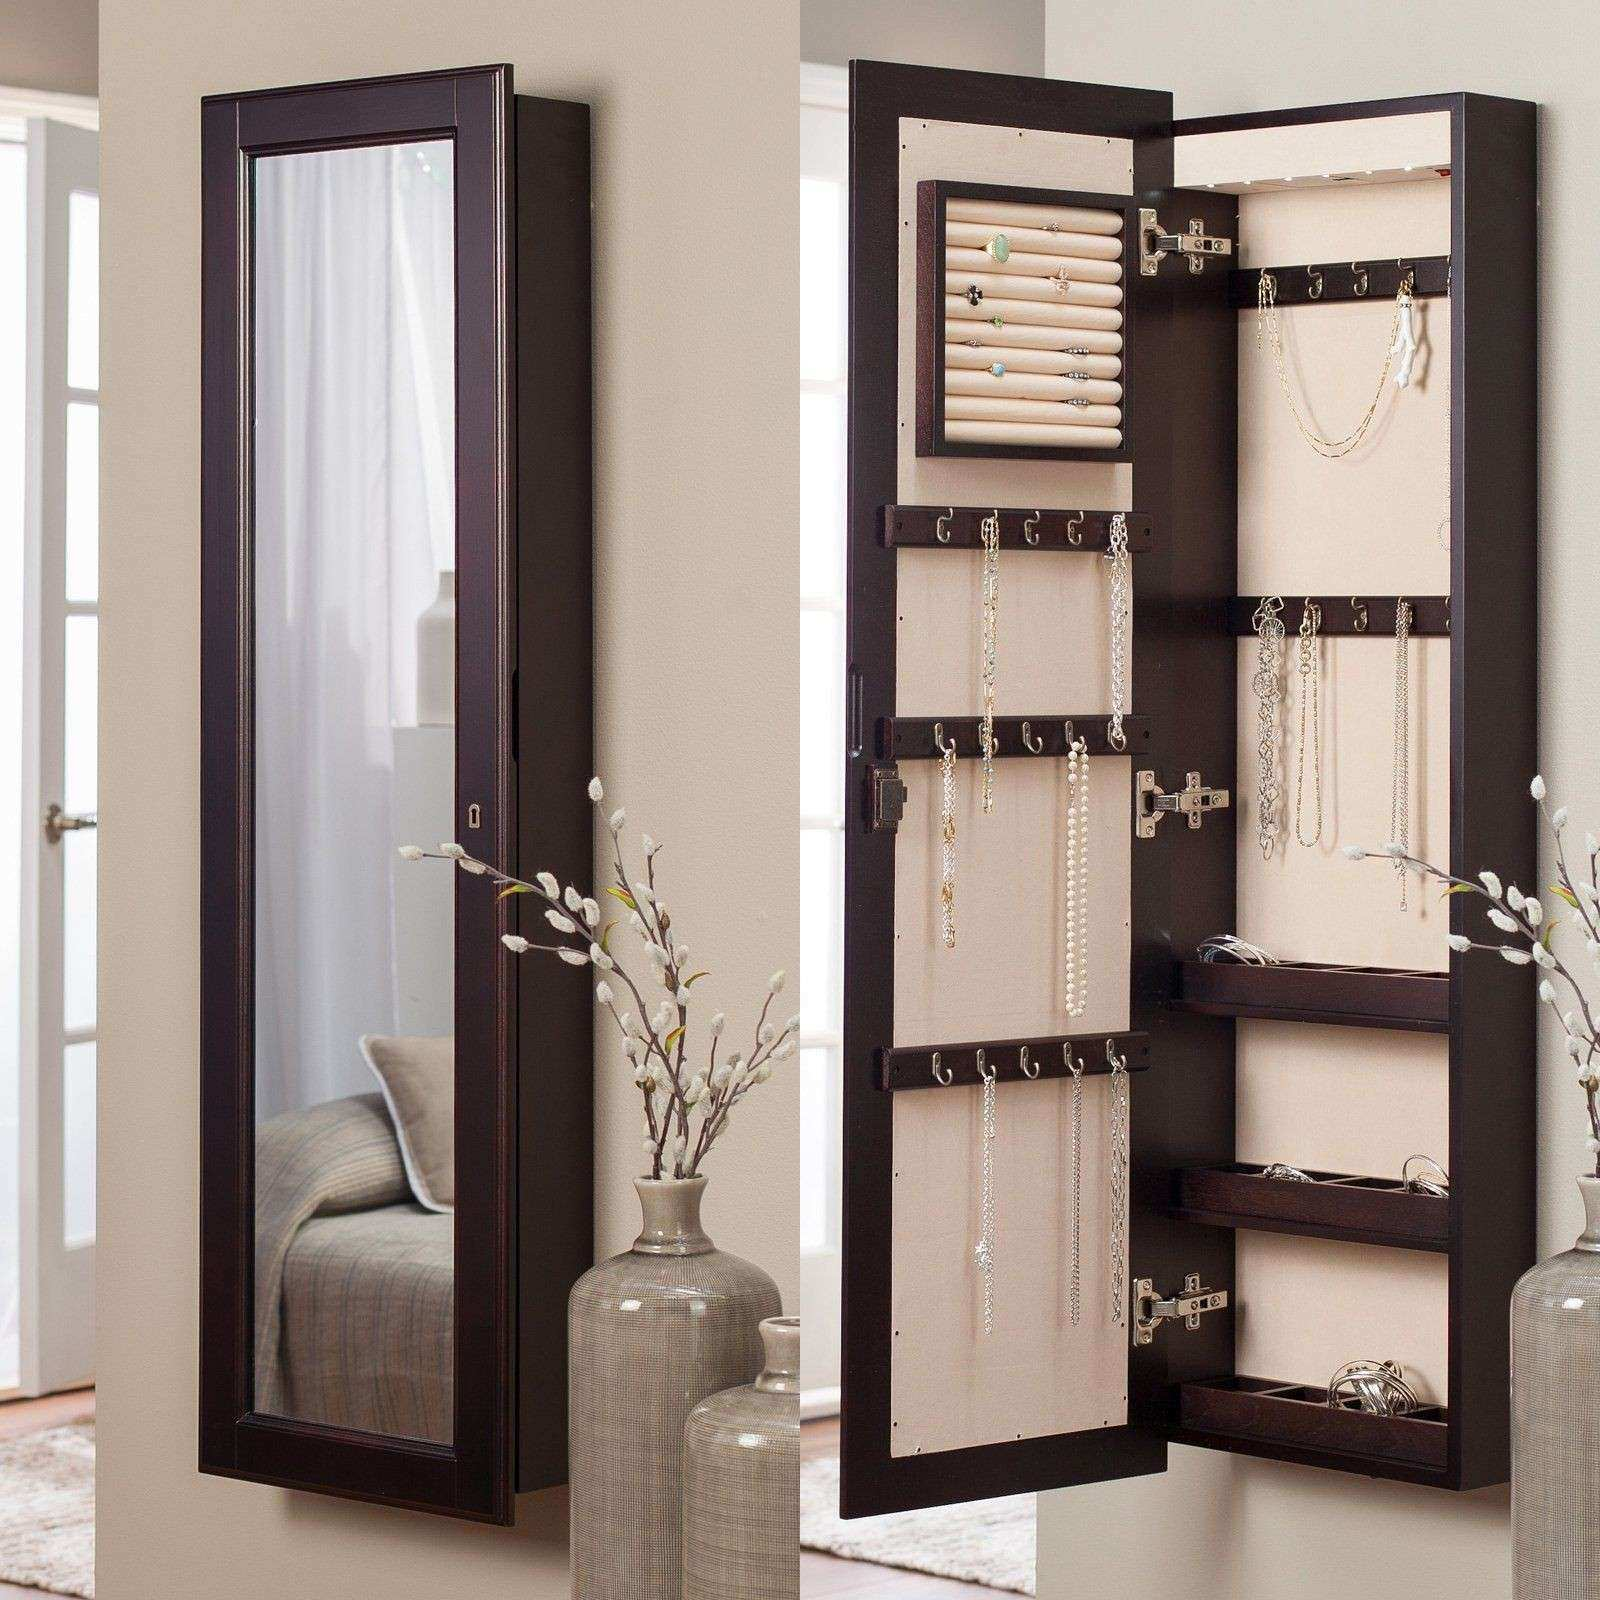 Belham Living Lighted Wall Mount Locking Jewelry Armoire Espresso